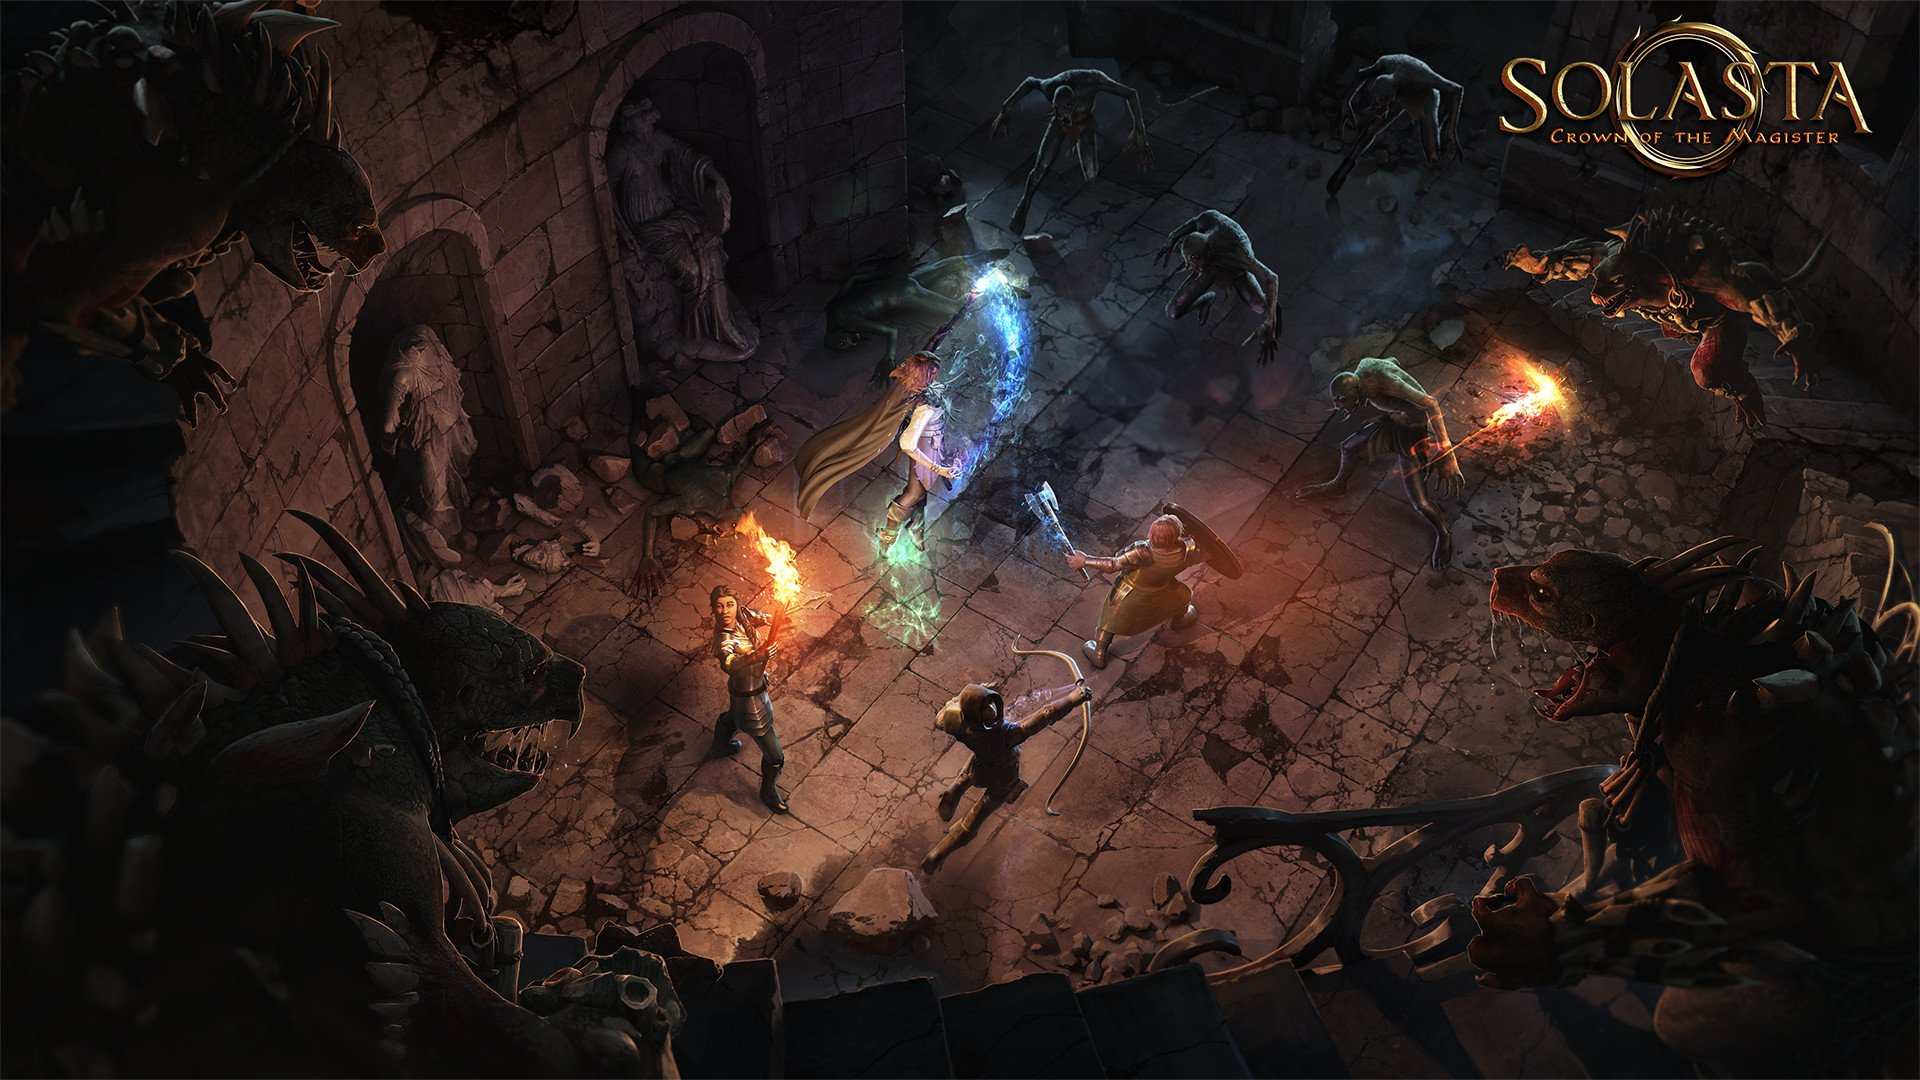 Solasta: BG3 competitor lets you create your own dungeons